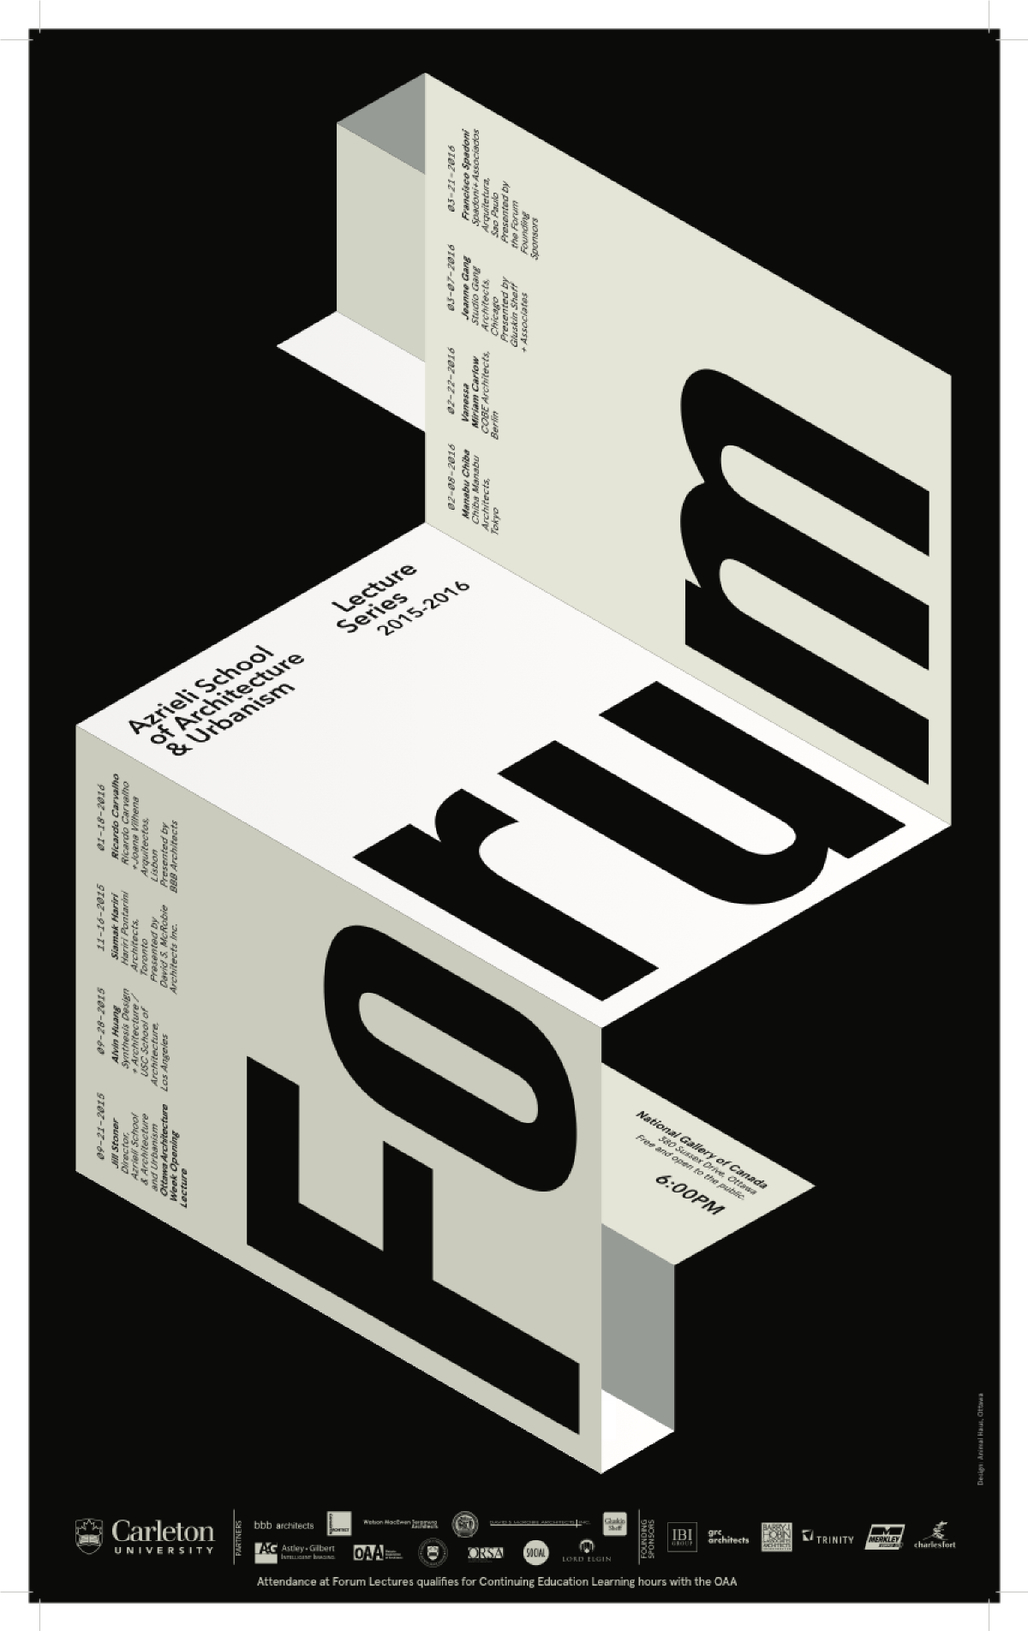 """Forum"" lecture series. Poster courtesy of Azrieli School of Architecture & Urbanism, Carleton University."